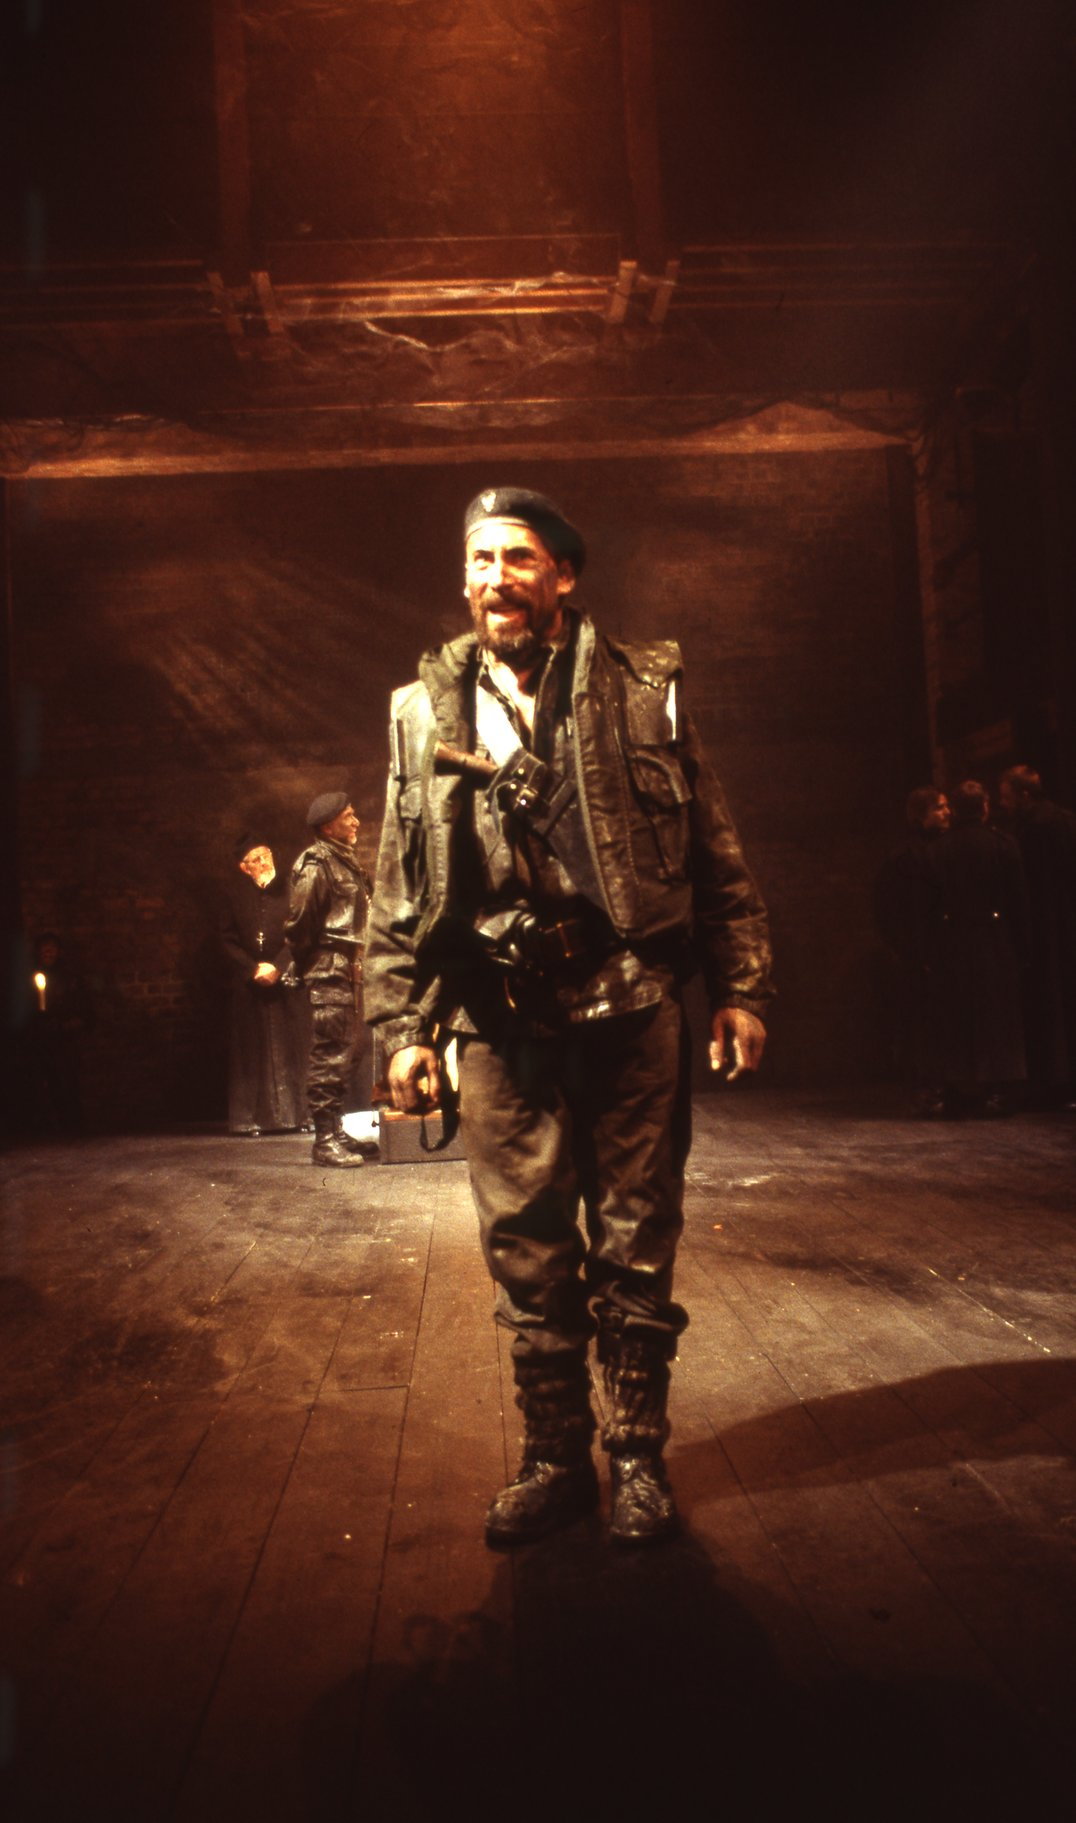 Macbeth dressed as a soldier.